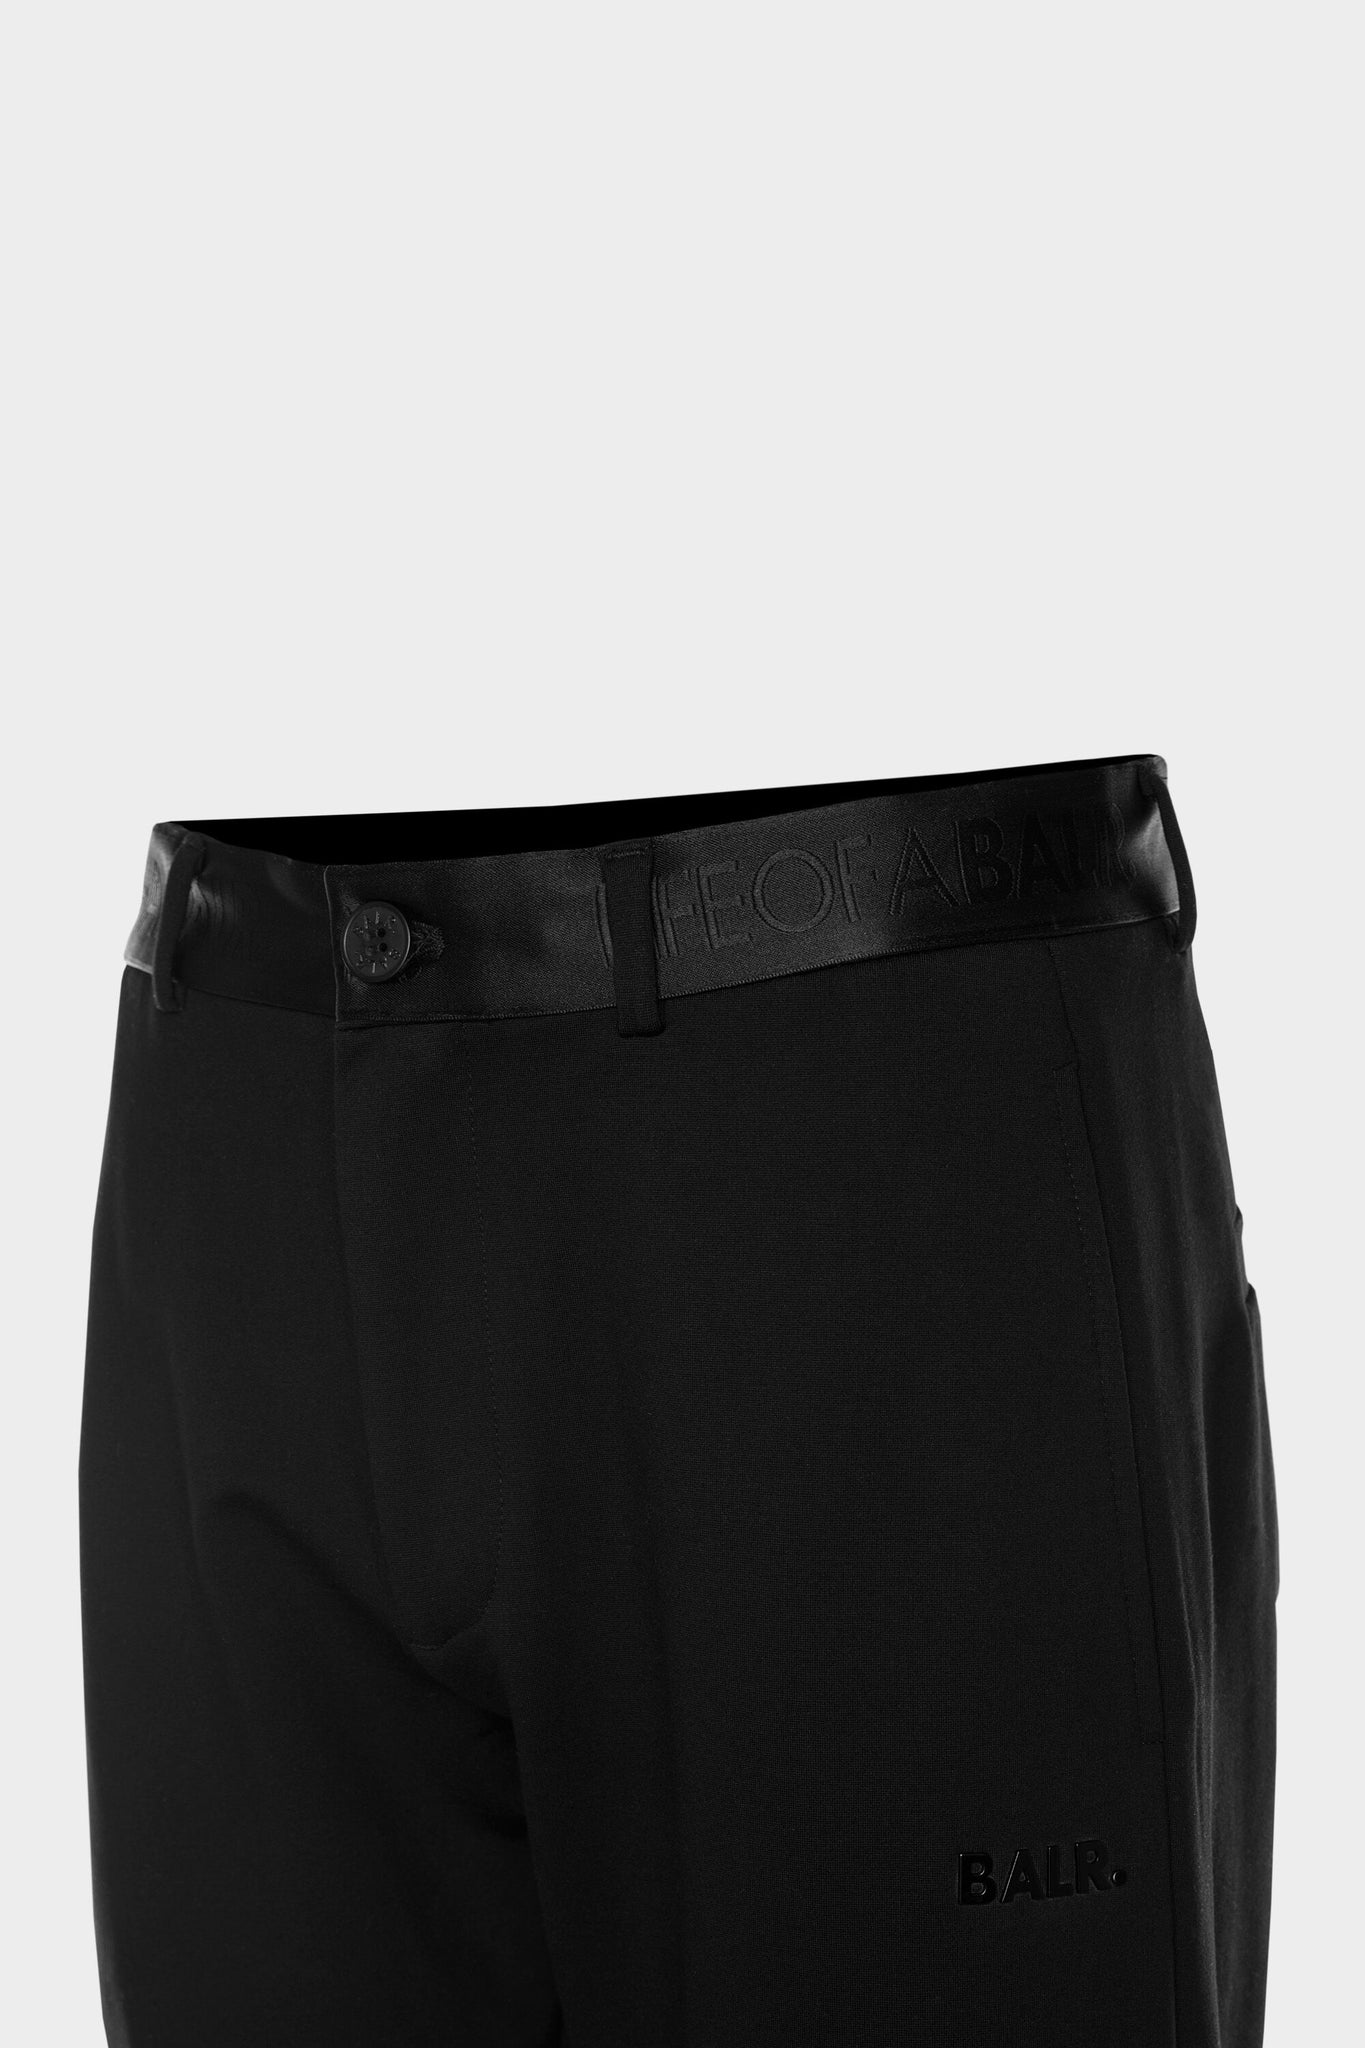 BALR. Slim Chino Men Black